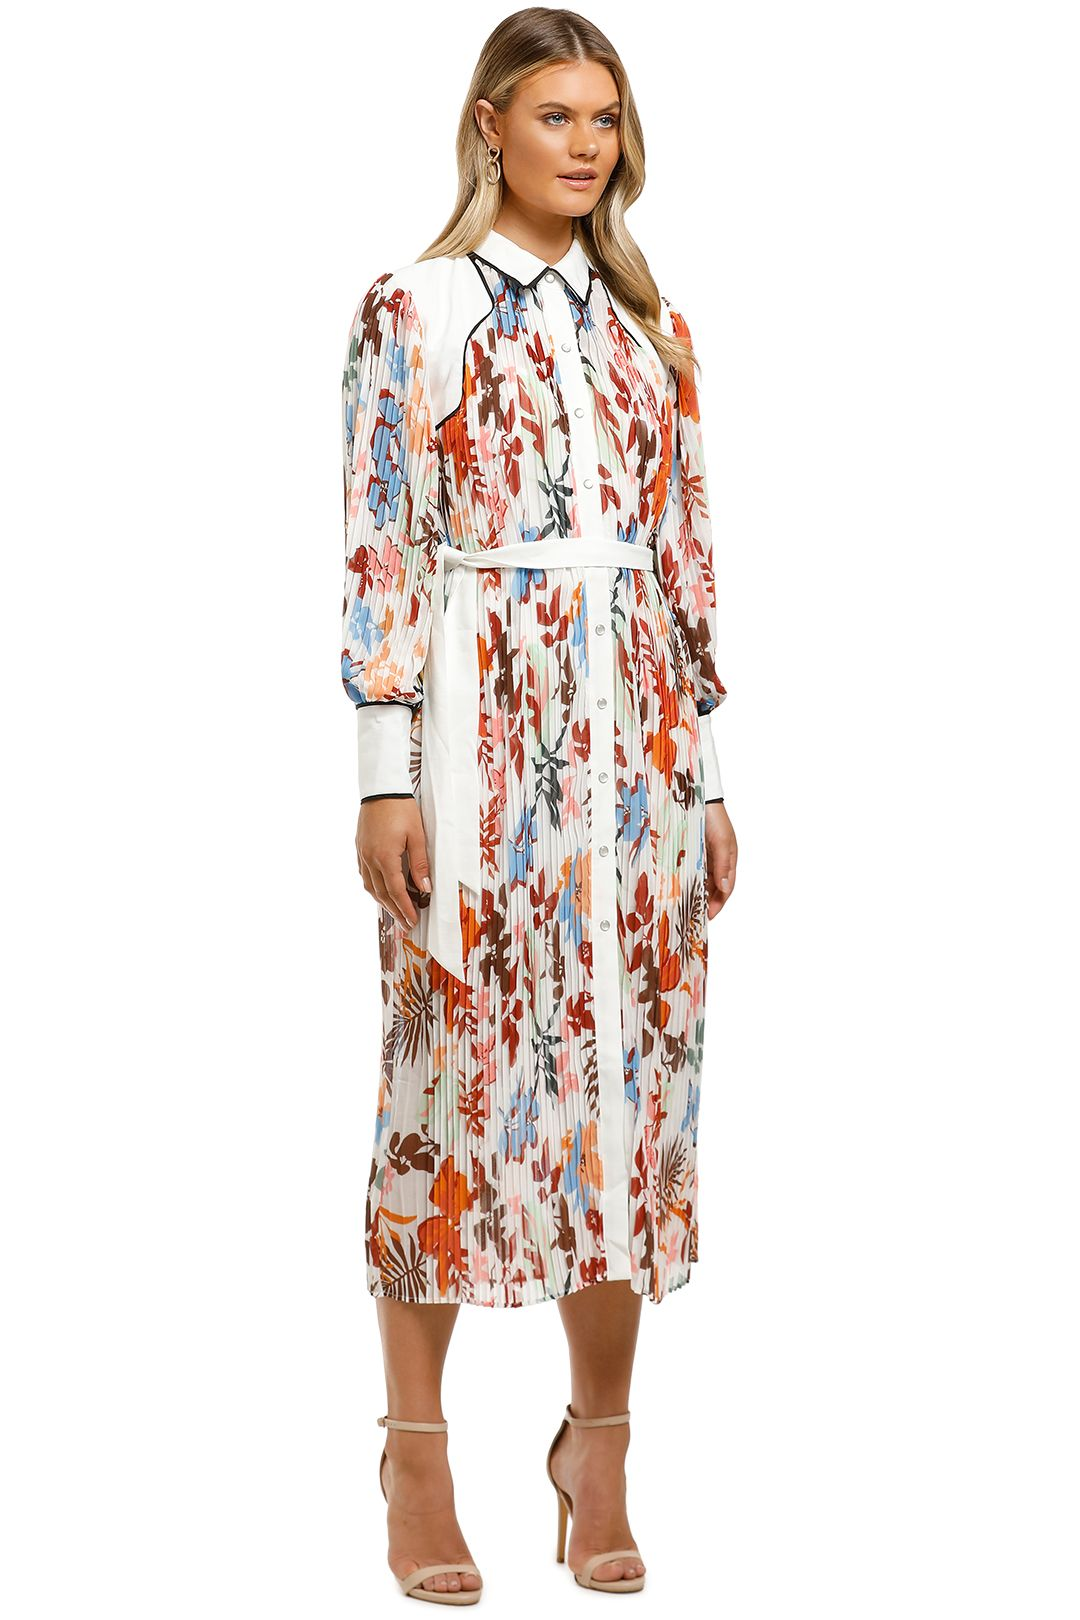 CMEO-Collective-With-Or-Without-Dress-Ivory-Abstract-Floral-Side